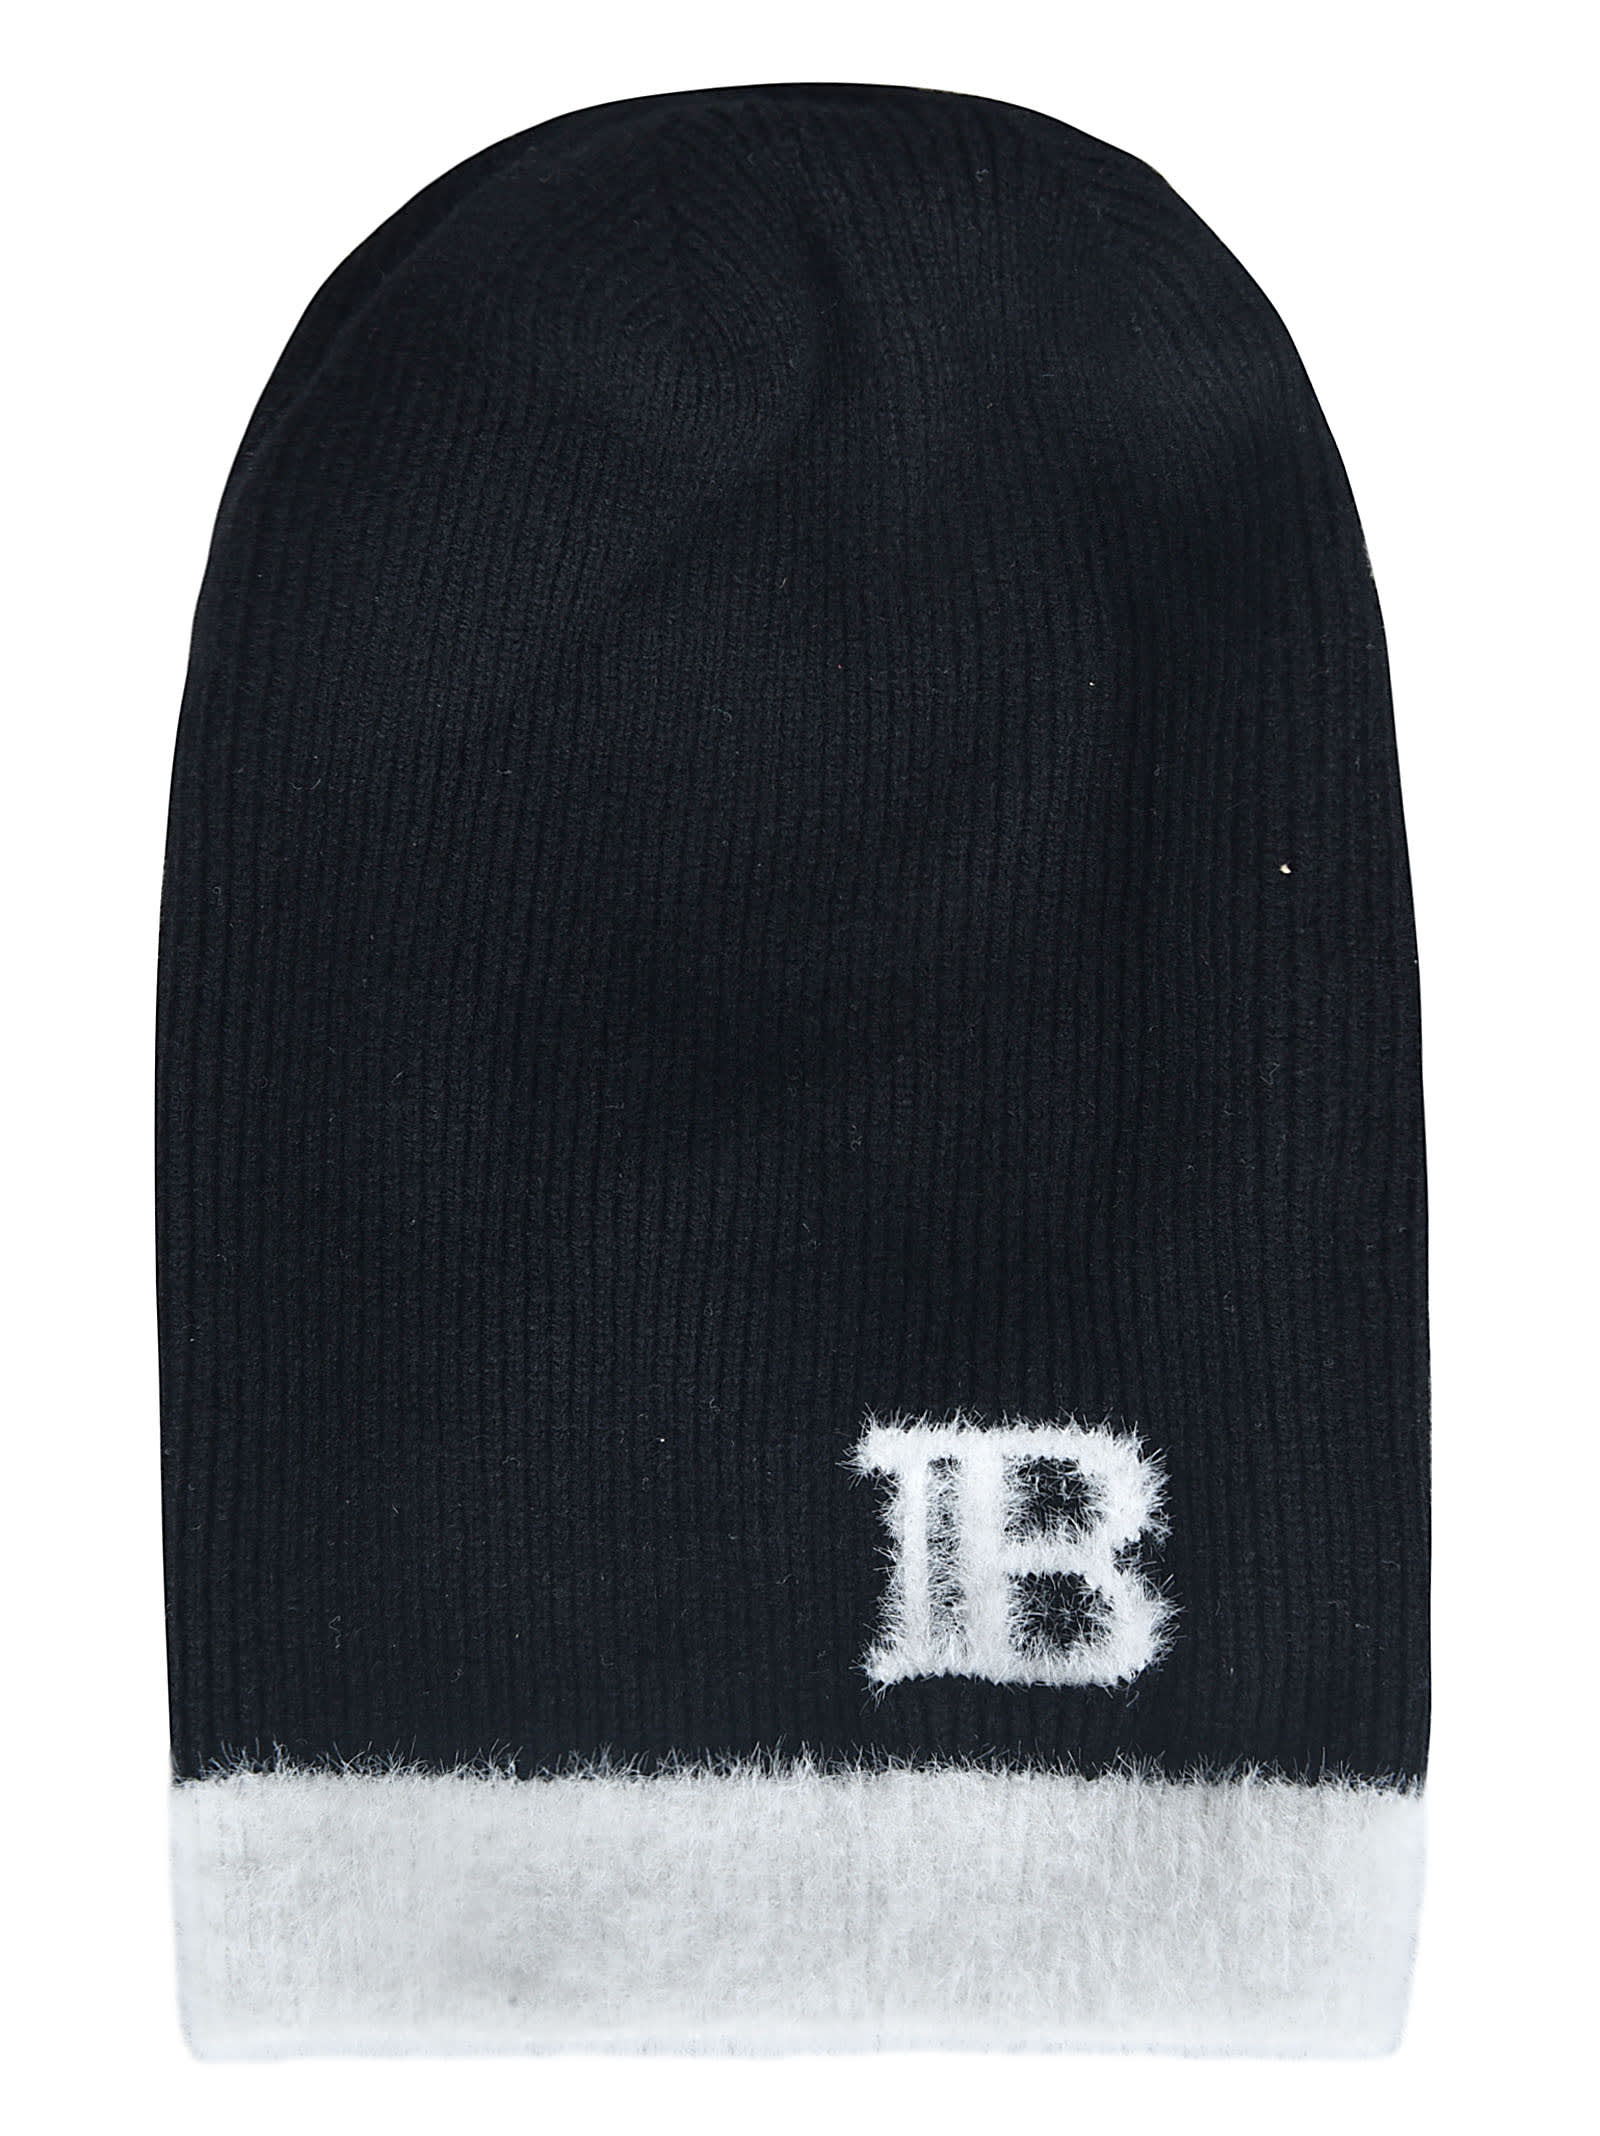 Balmain LOGO EMBROIDERED BEANIE